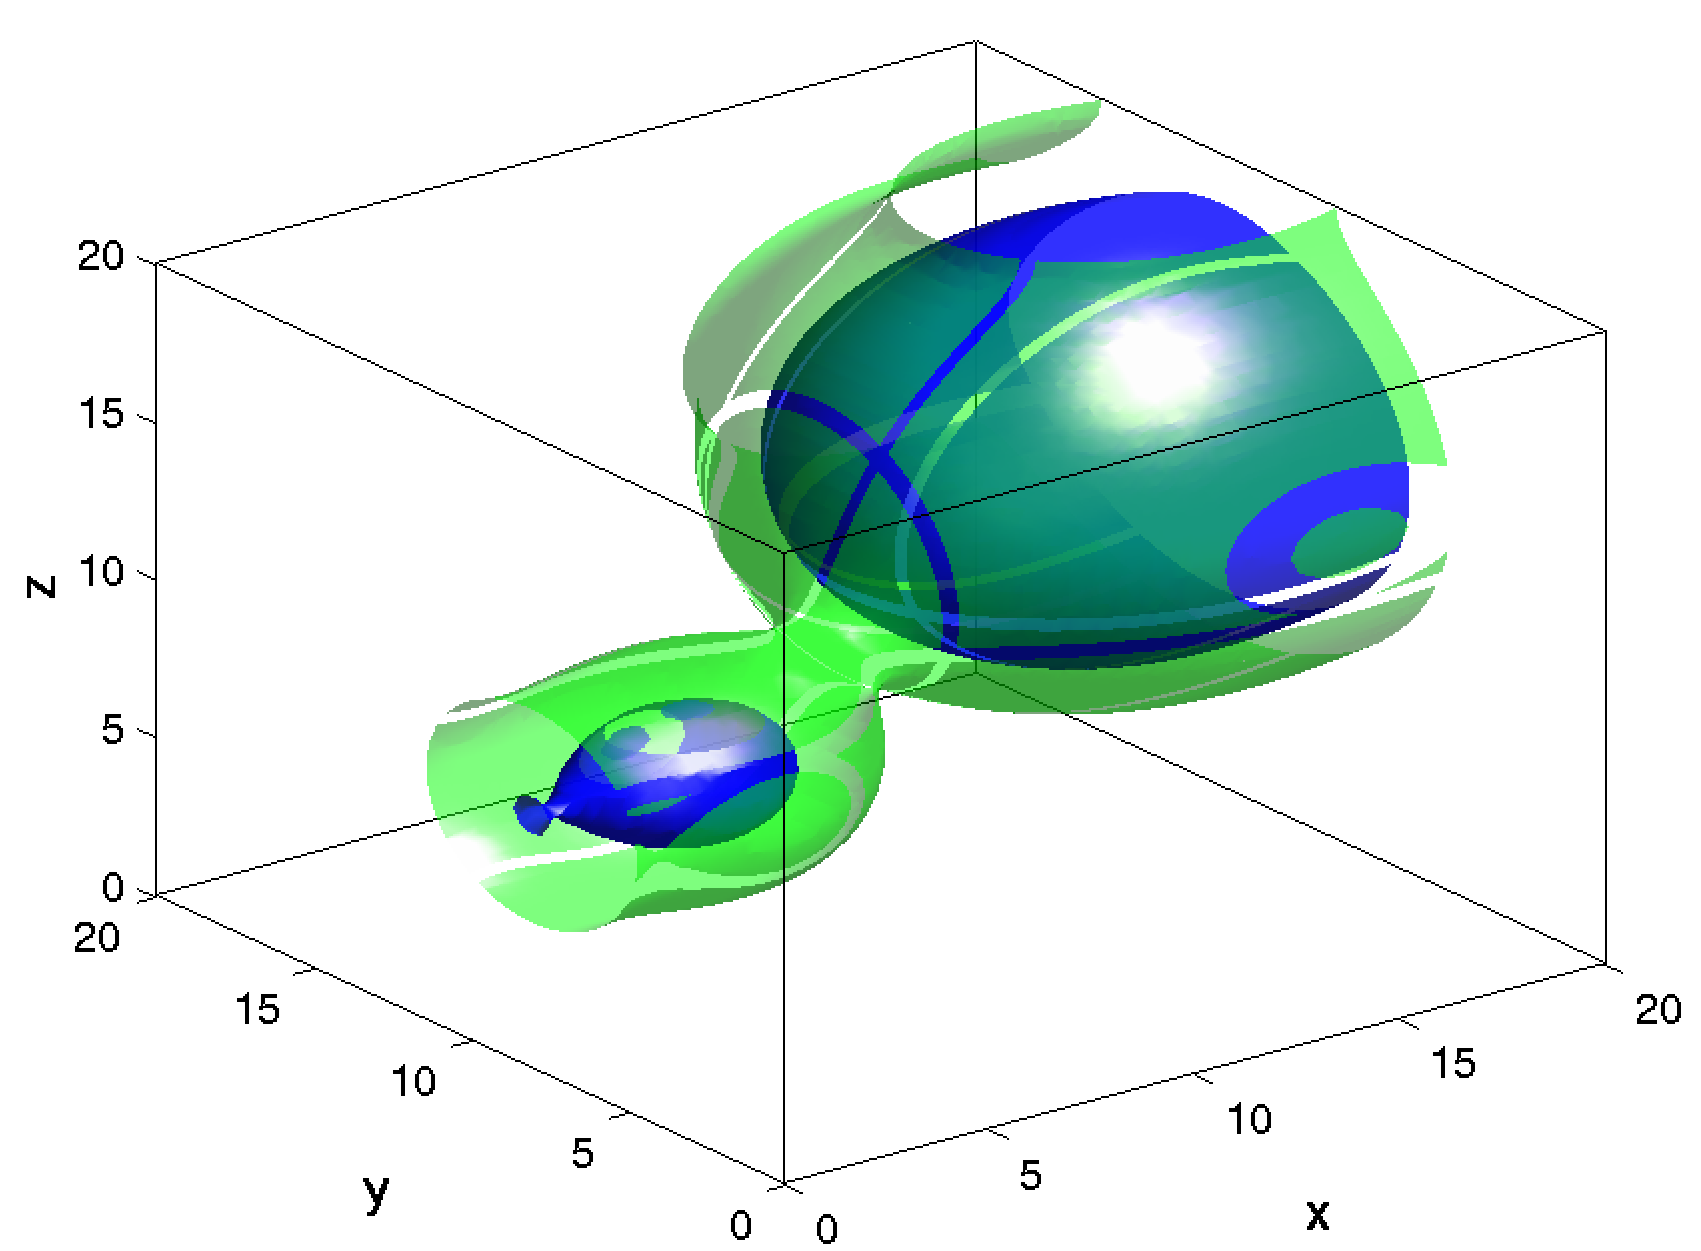 Figure 7: Results for the cvsatmdisp ASAi kry bbd p example problem in 3D. Two isosurfaces of the gradient with respect to the source parameters. They correspond to values of 0.25 (green) and 0.